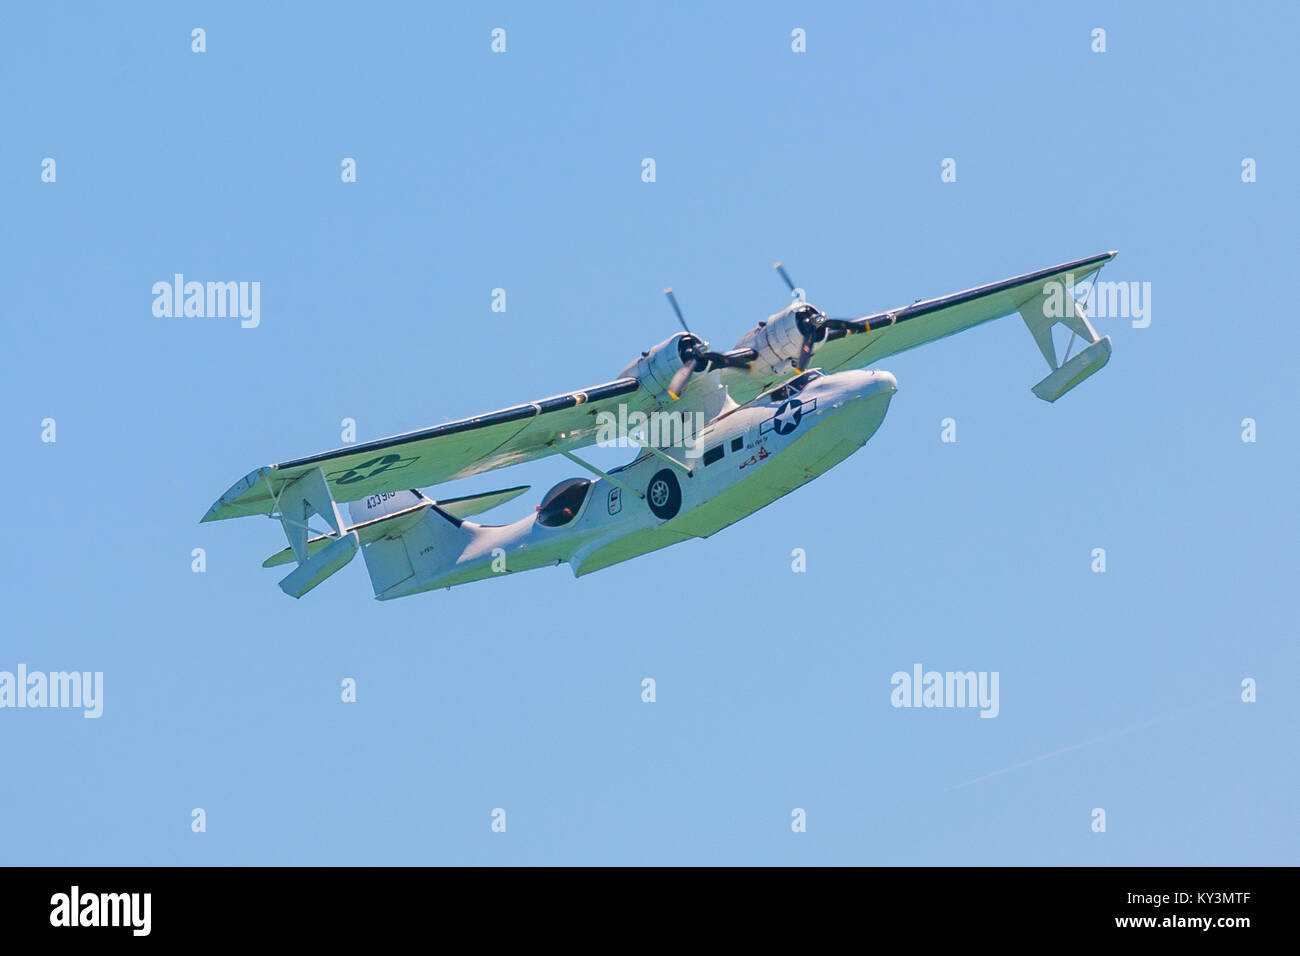 Catalina flying boat at the Eastbourne airshow 2017 - Stock Image